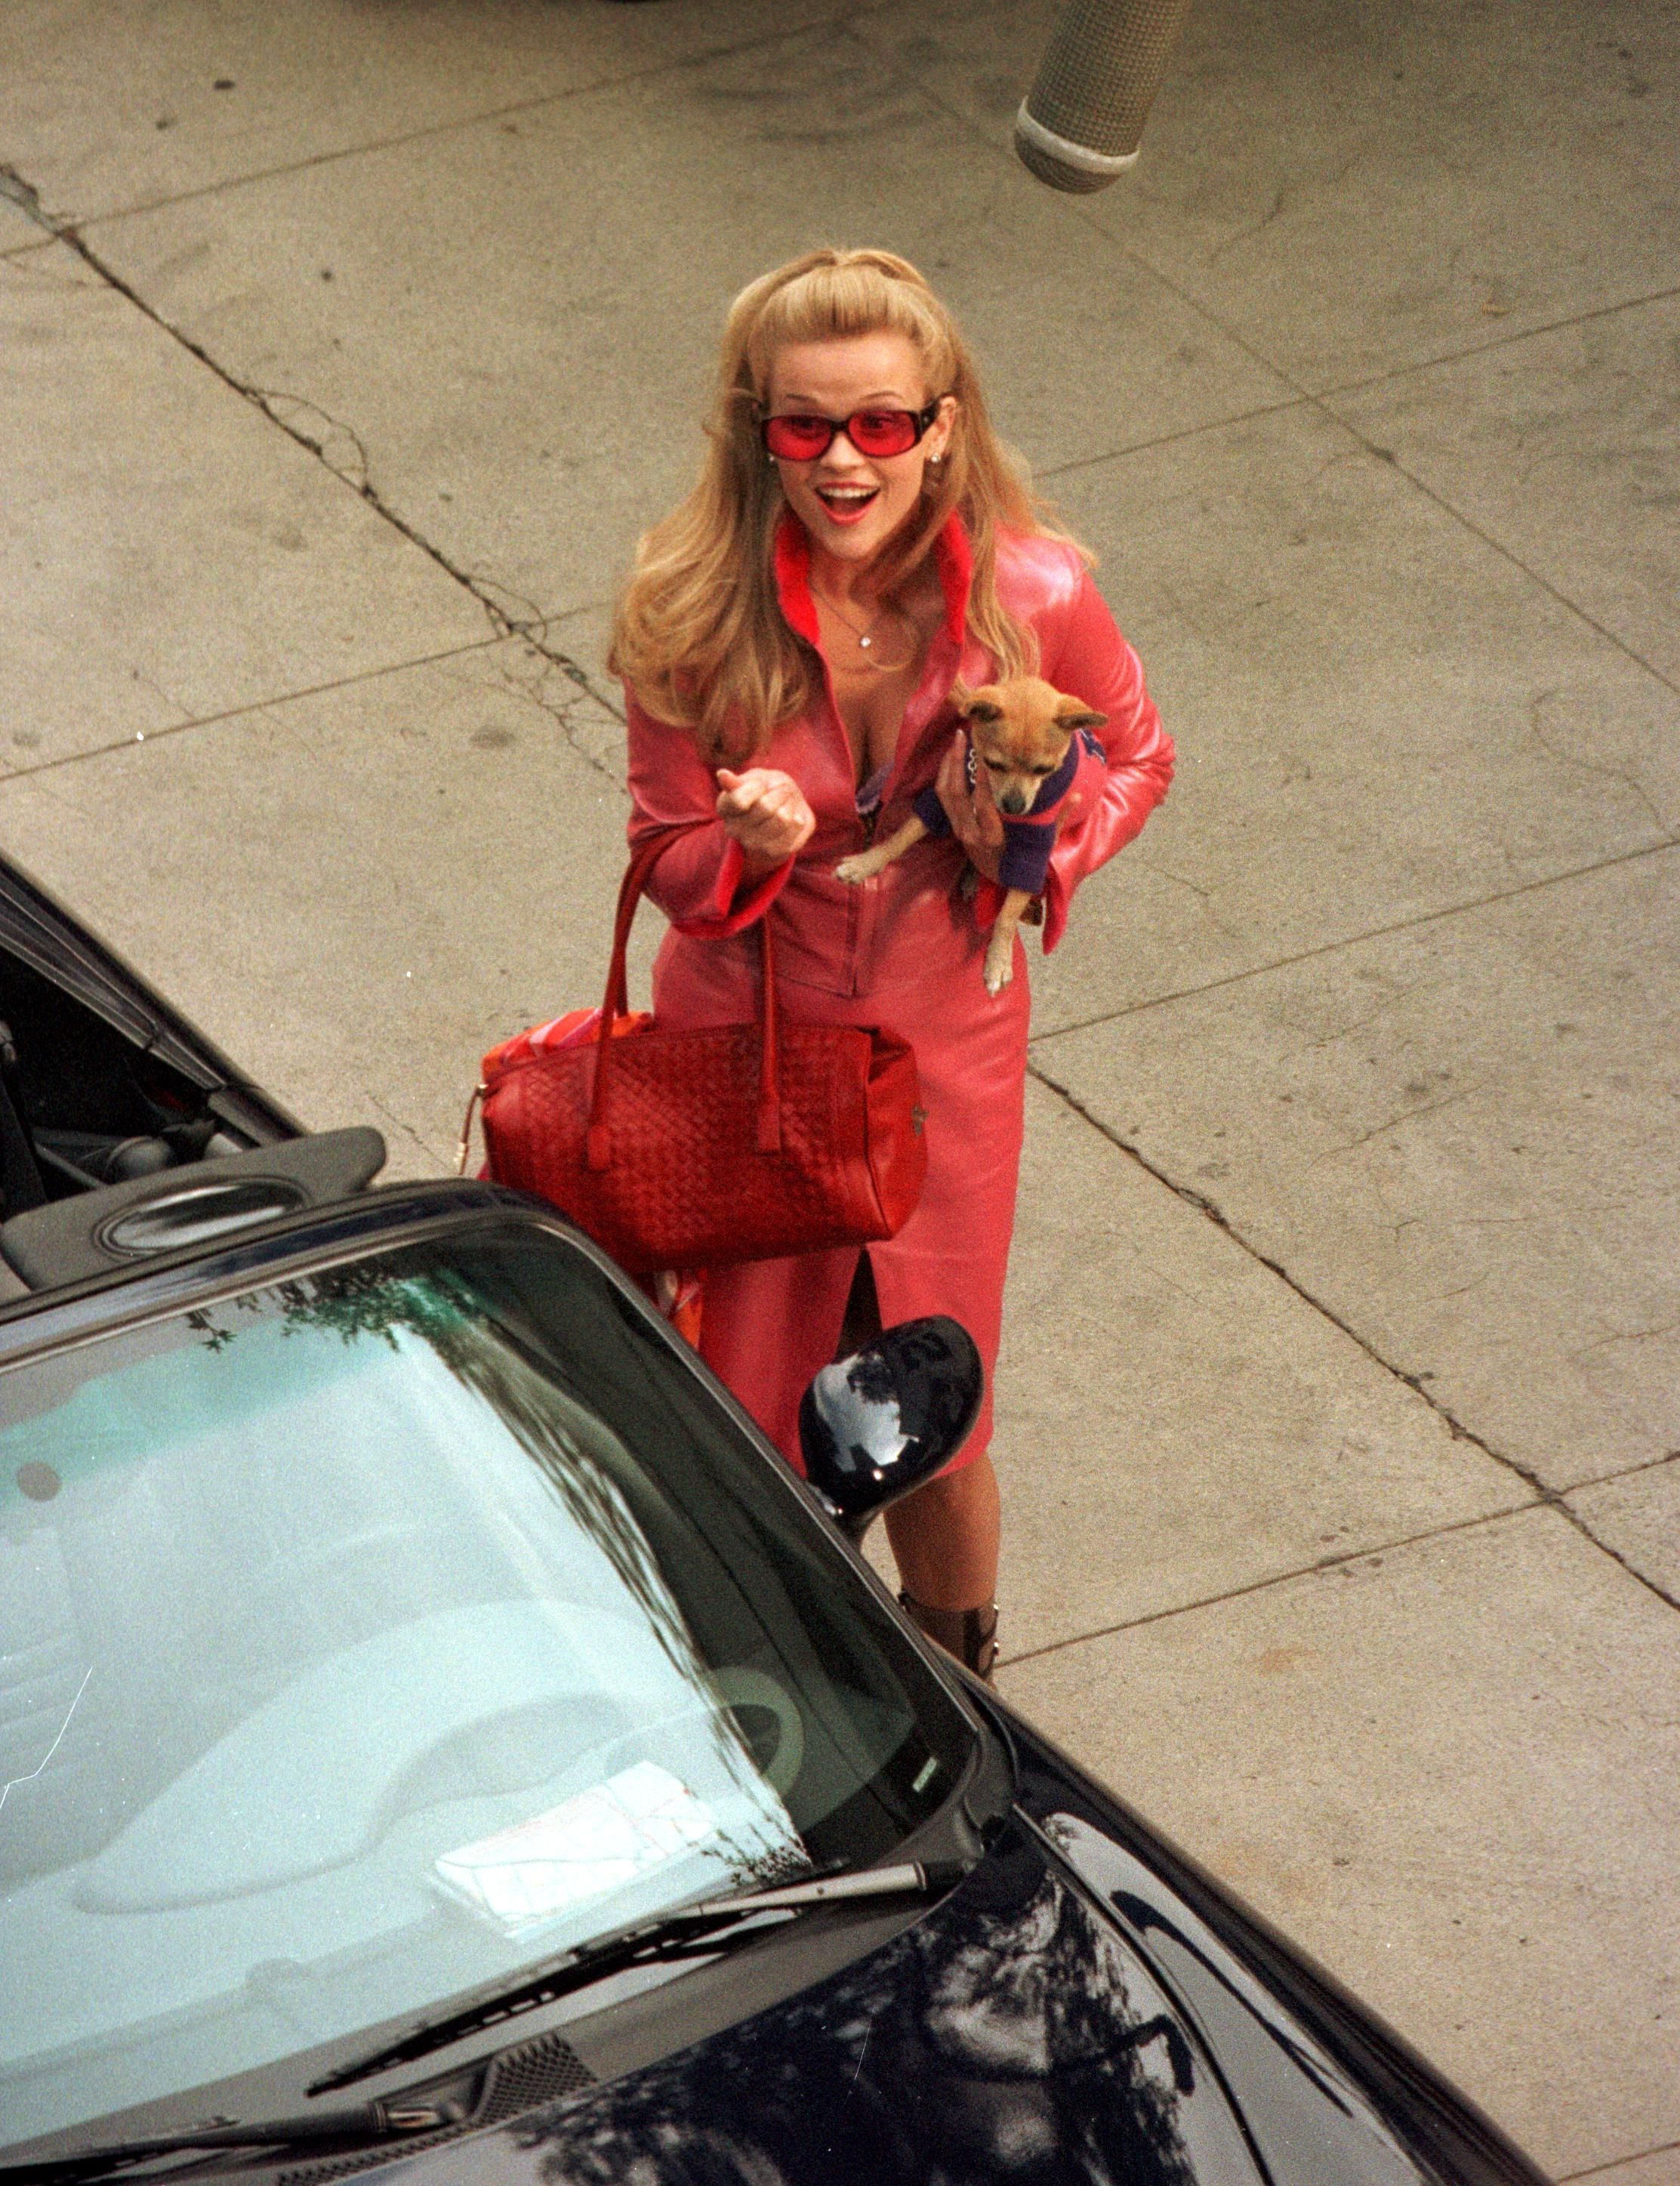 Reese Witherspoon Shares a Quick Update on Legally Blonde 3